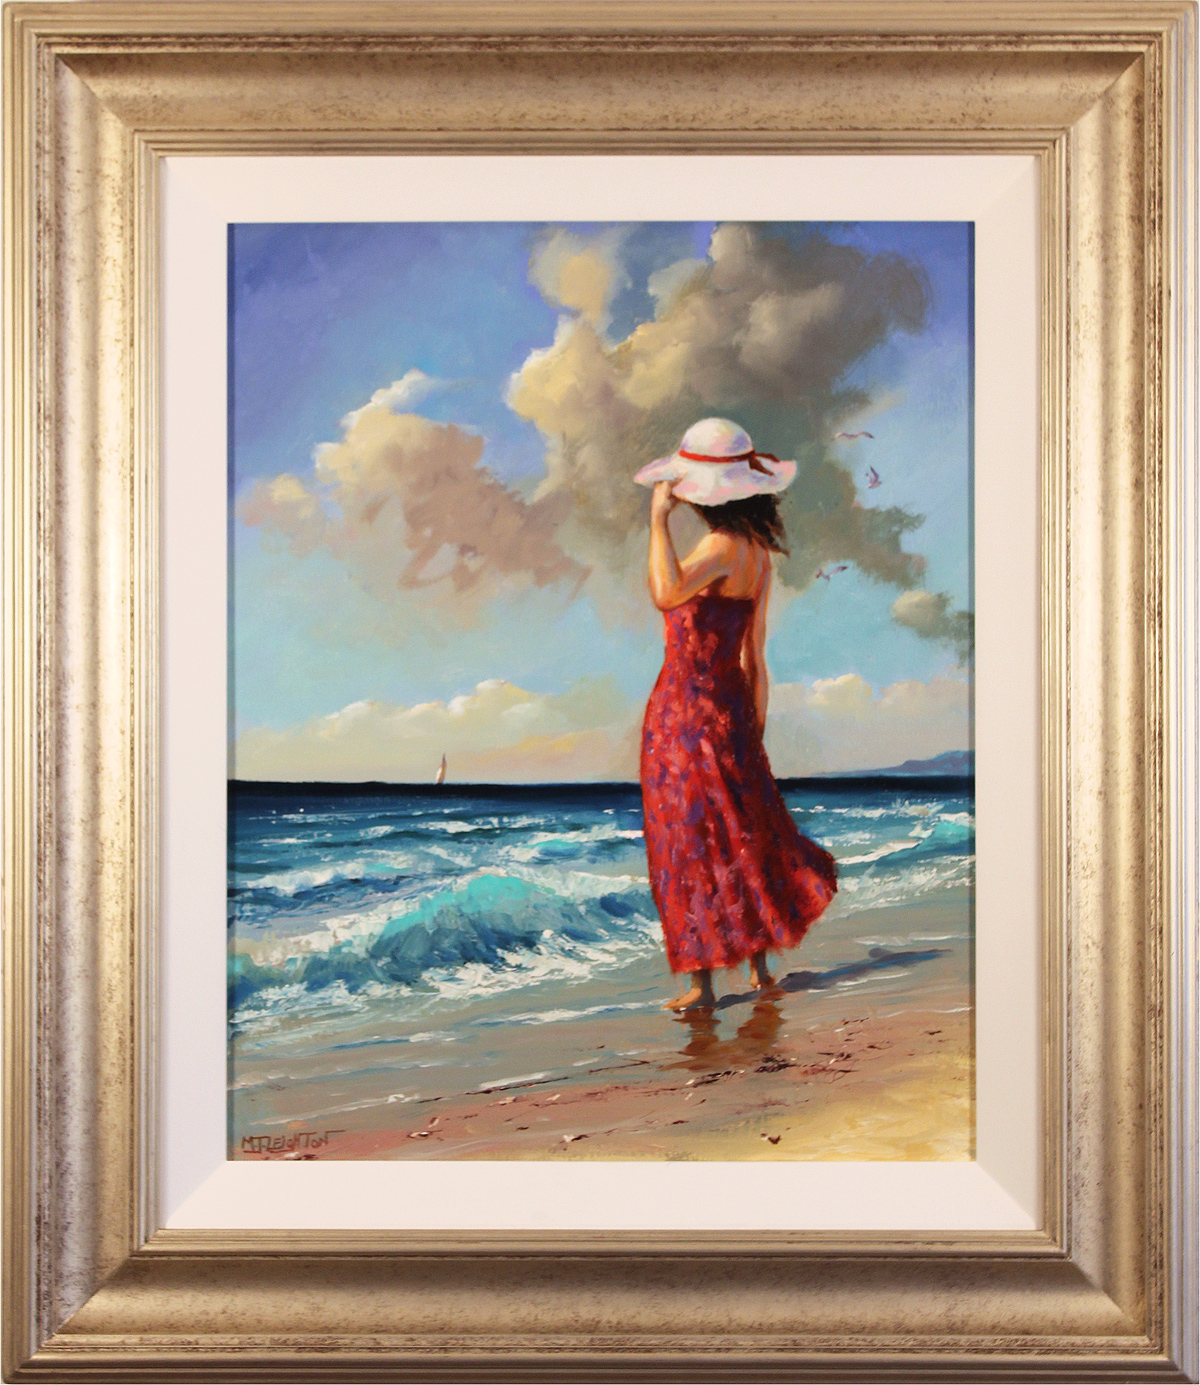 Martin Leighton, Original oil painting on canvas, Windy Shoreline. Click to enlarge